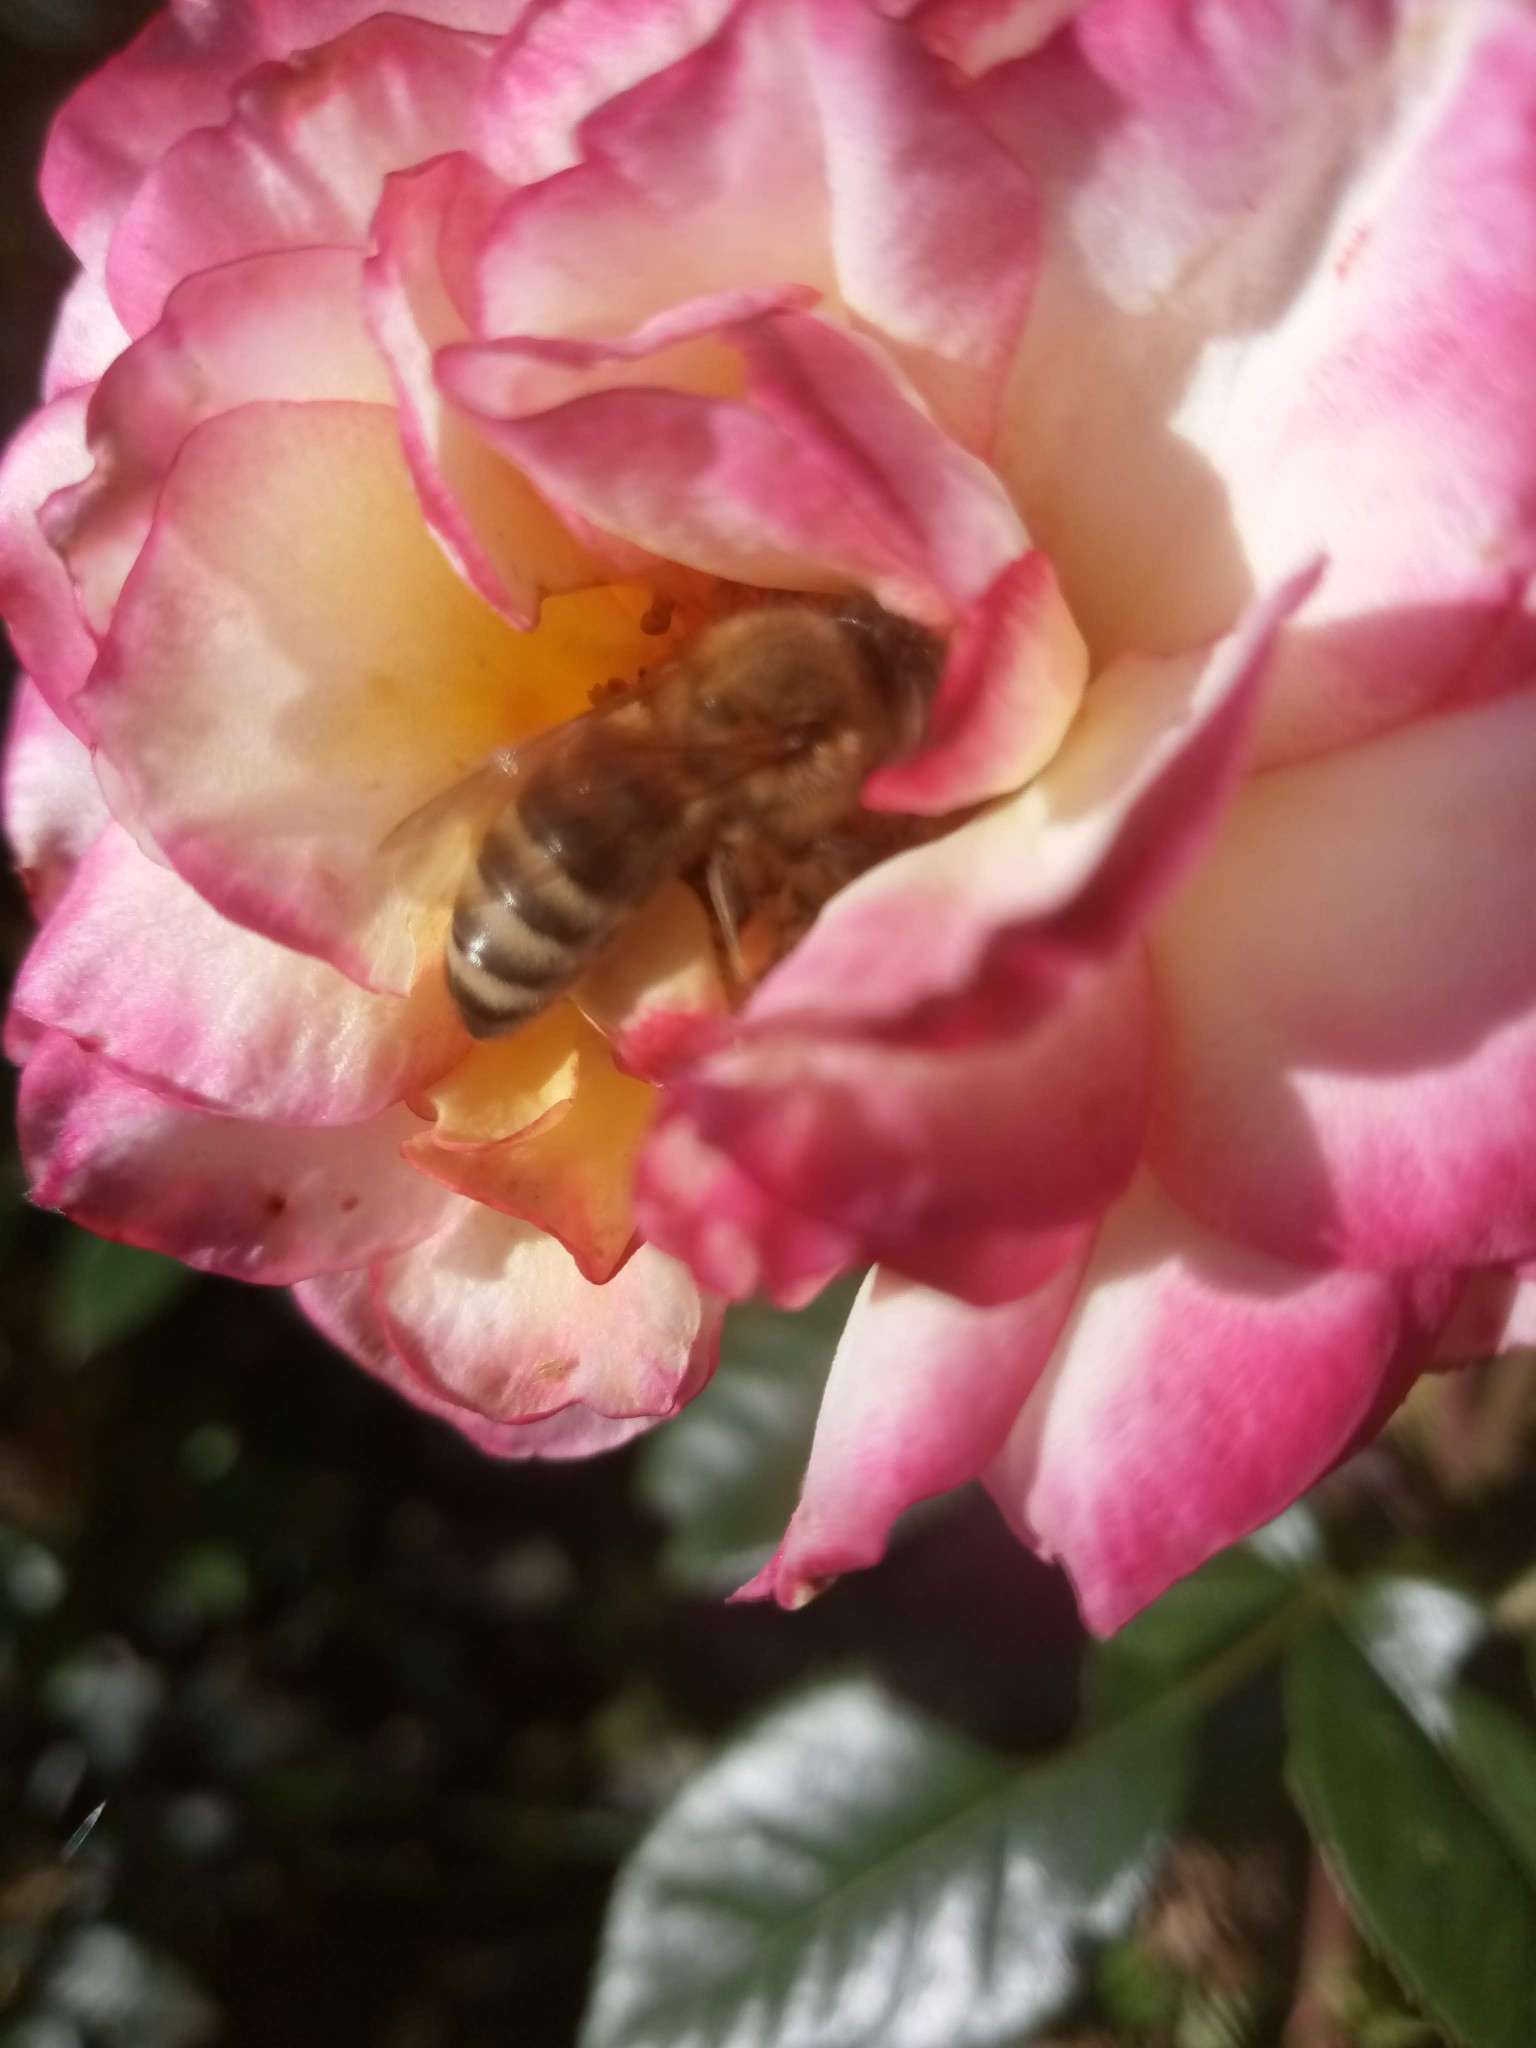 Bee on a rose photo